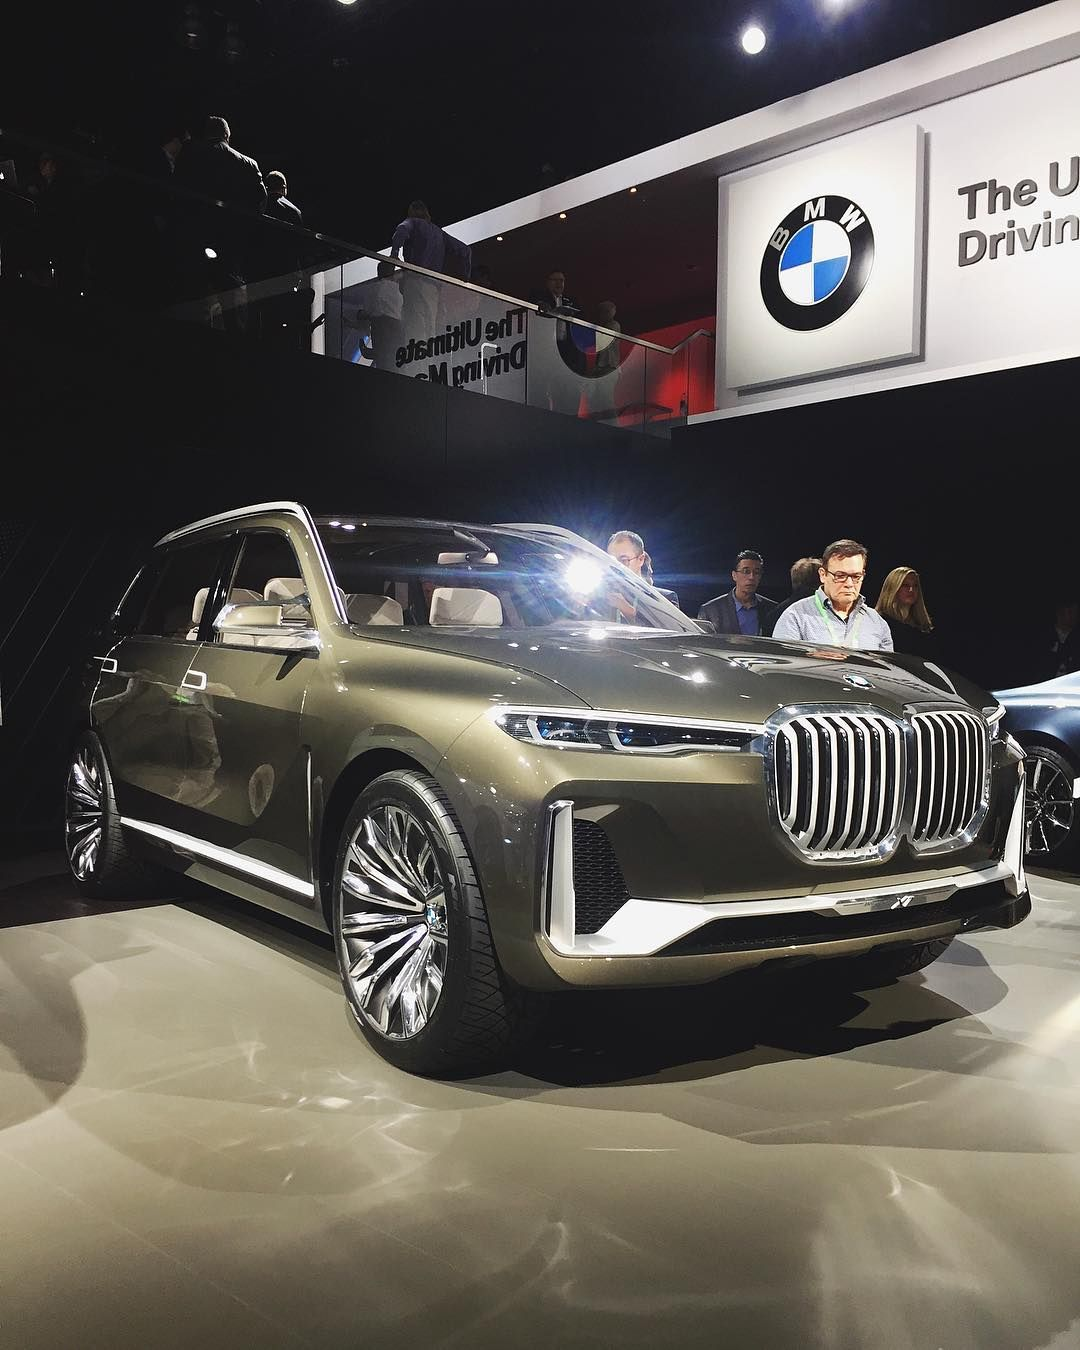 Which emoji would you use to describe this bmw  concept laas also nice cool rh uk pinterest